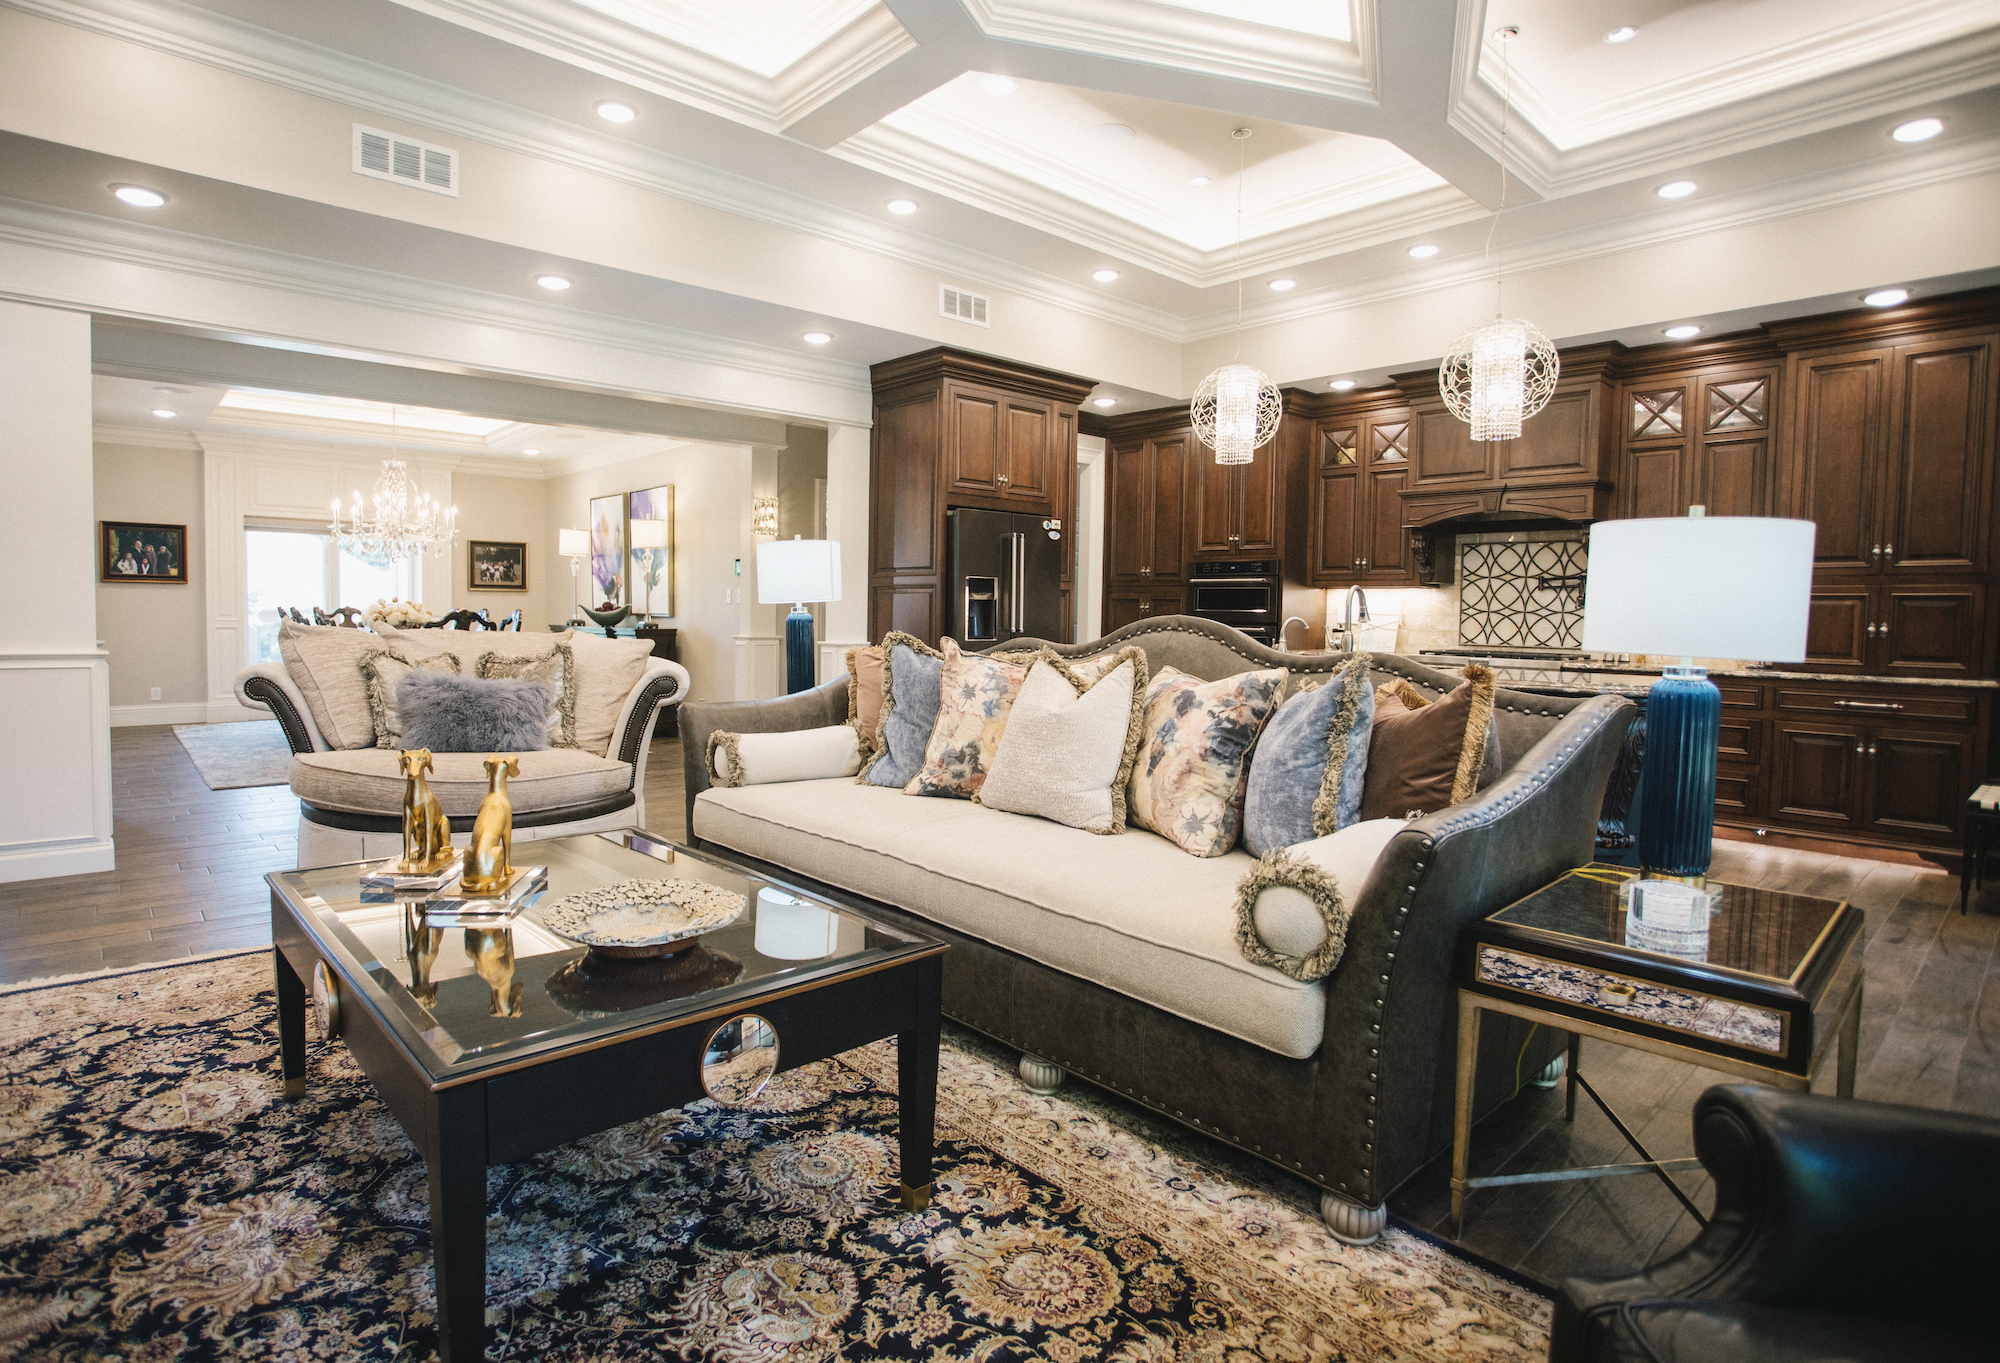 Interior Design Services Evansville In Enjole Interiors